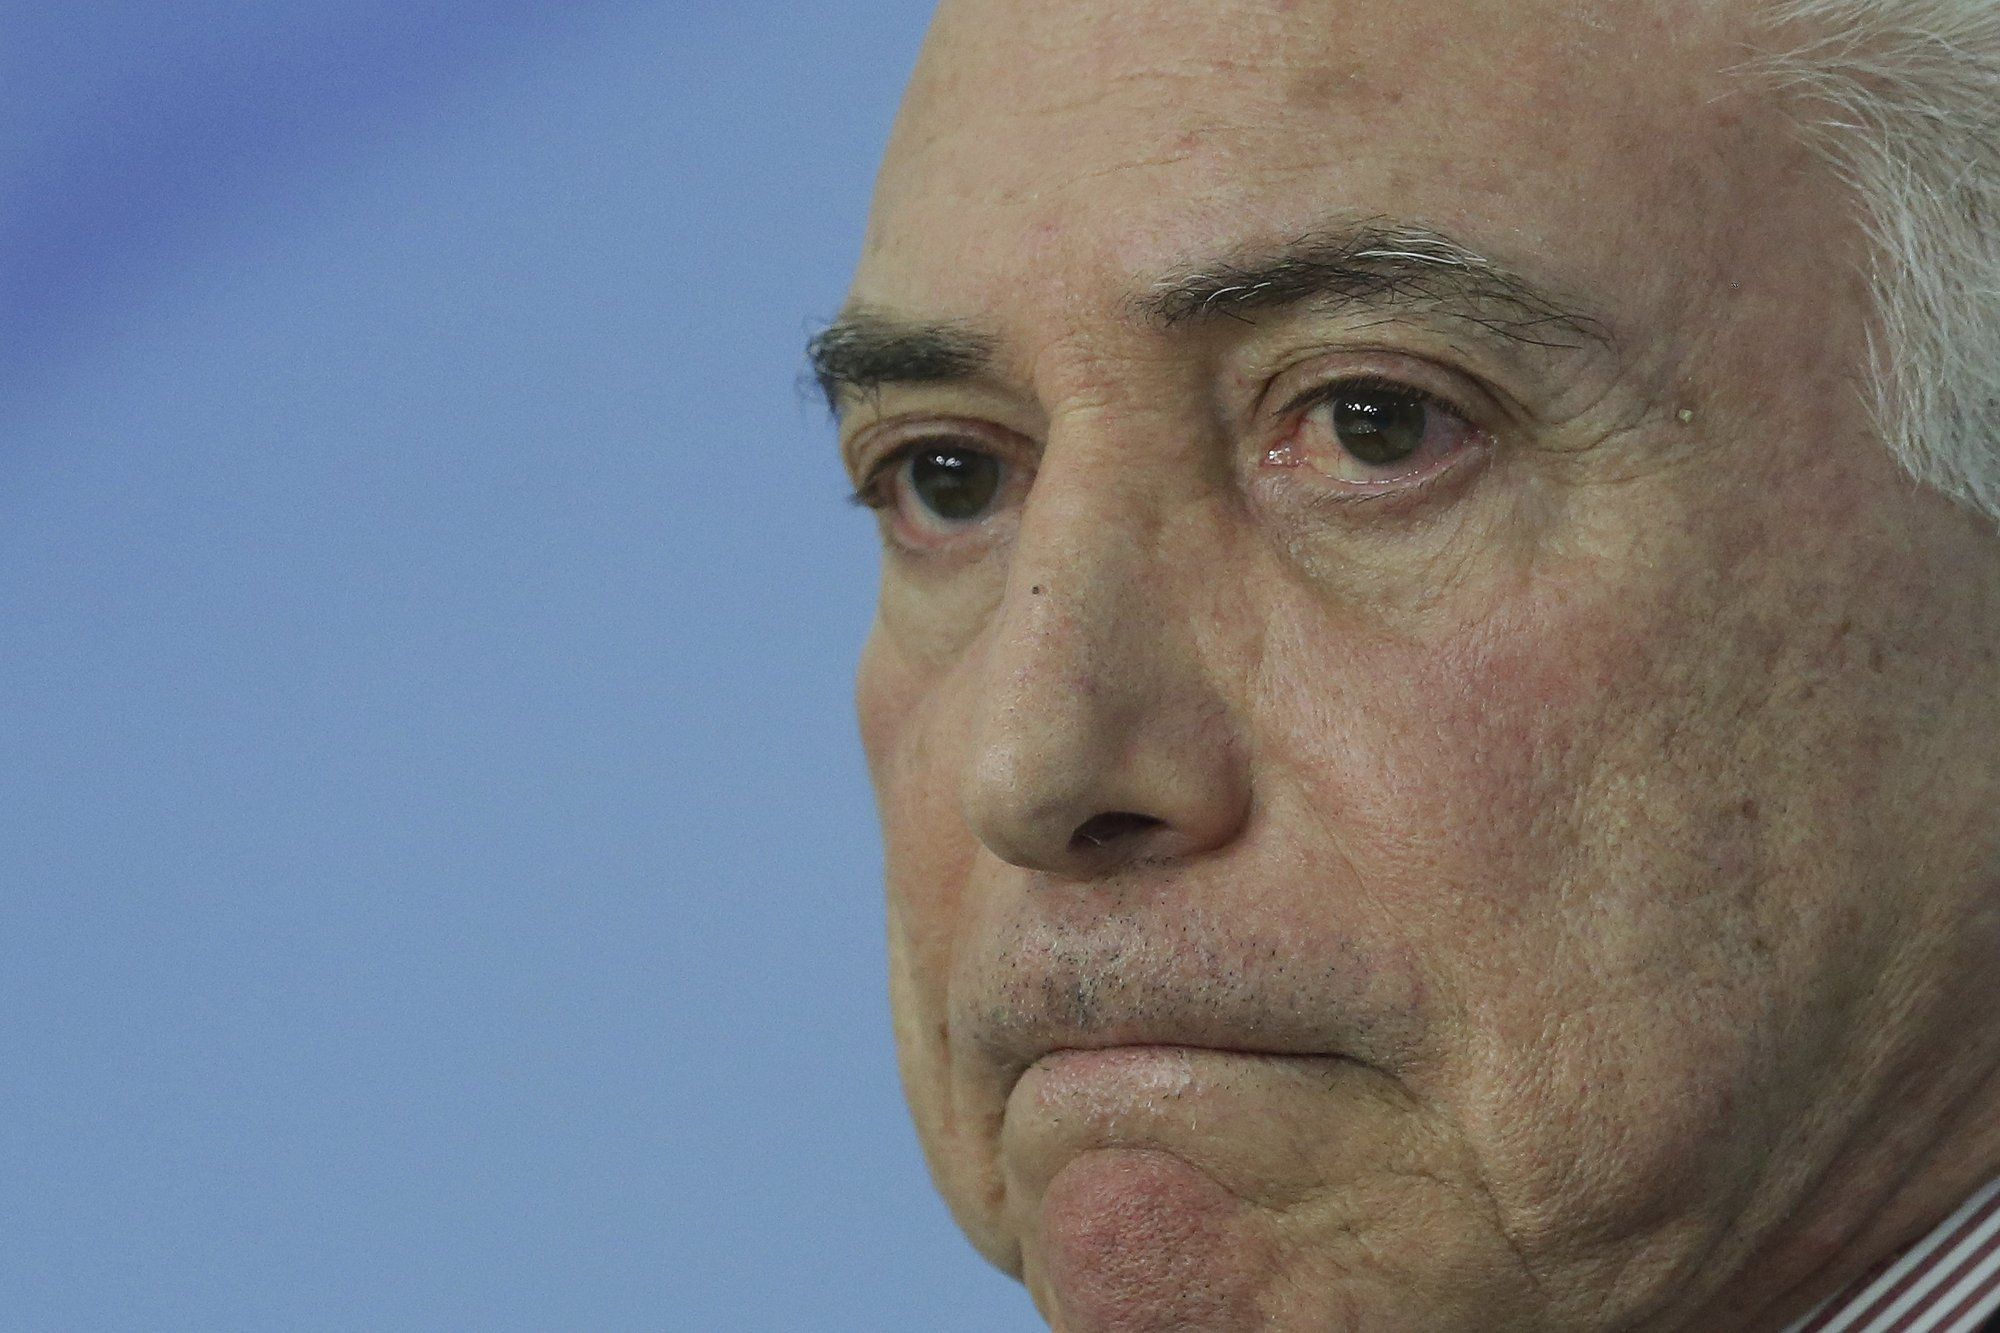 Ex-President Temer arrested in Brazil on corruption charges